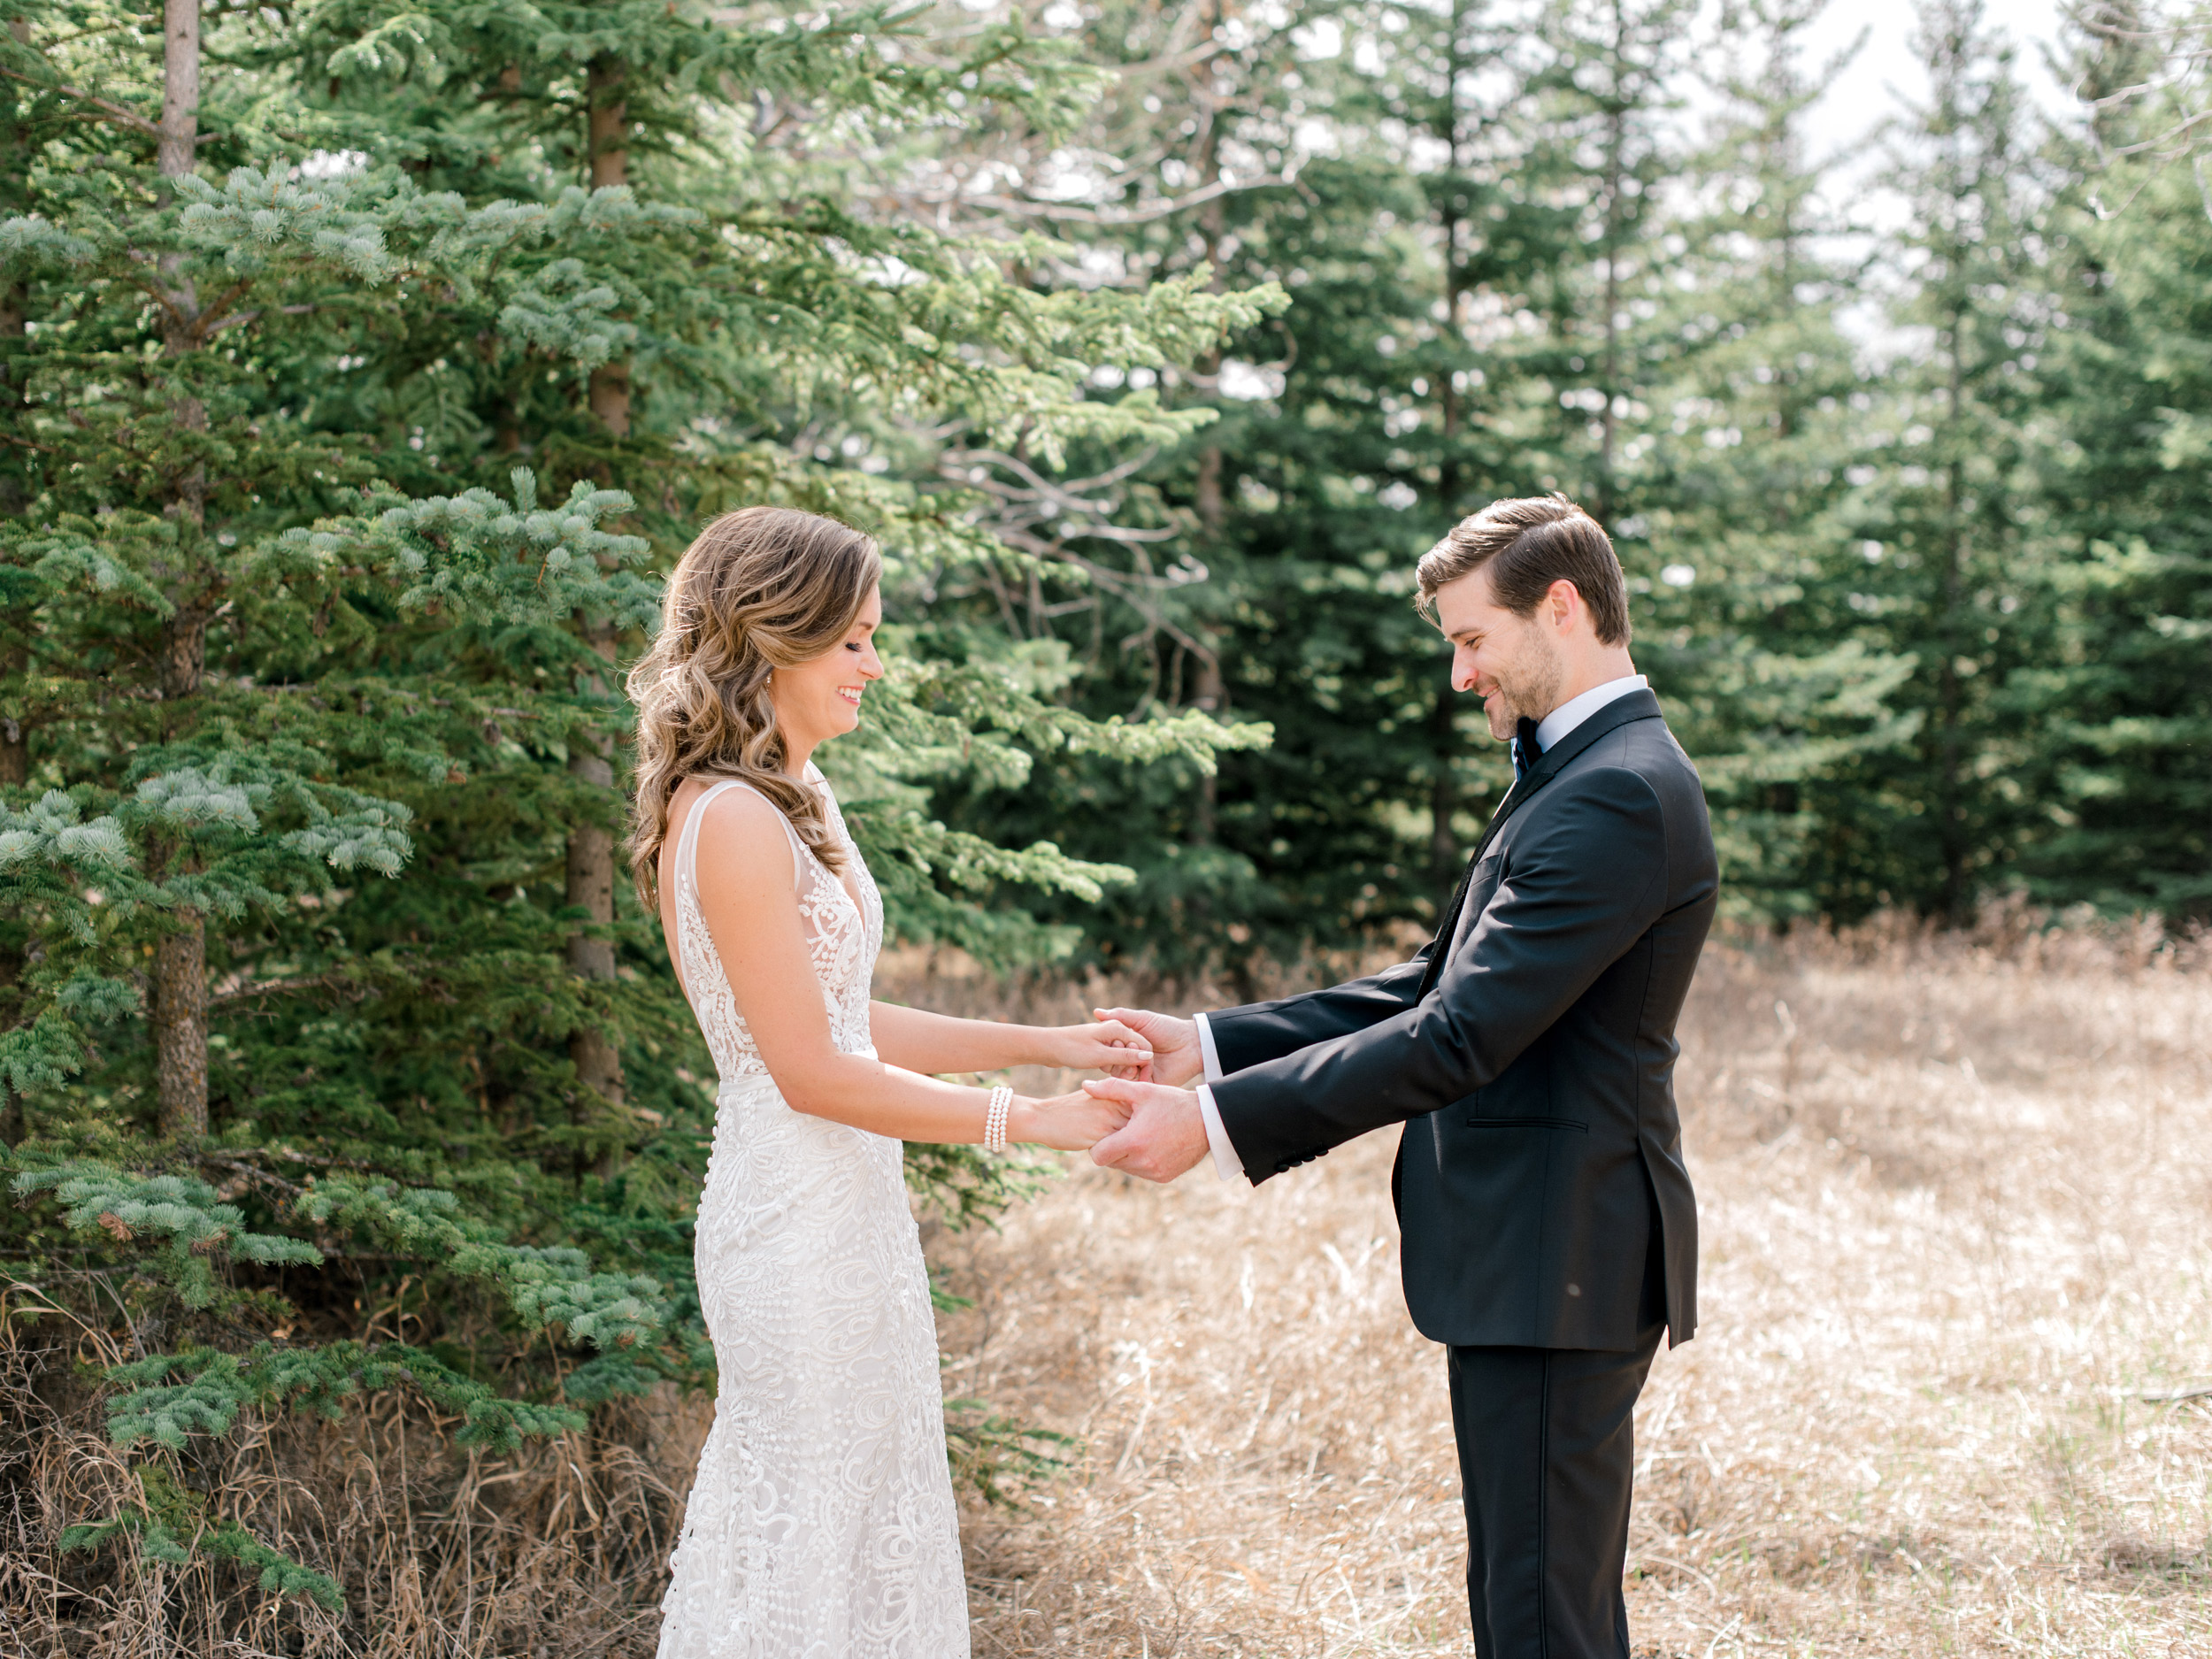 036-The_Lake_House_Calgary_Wedding.jpg